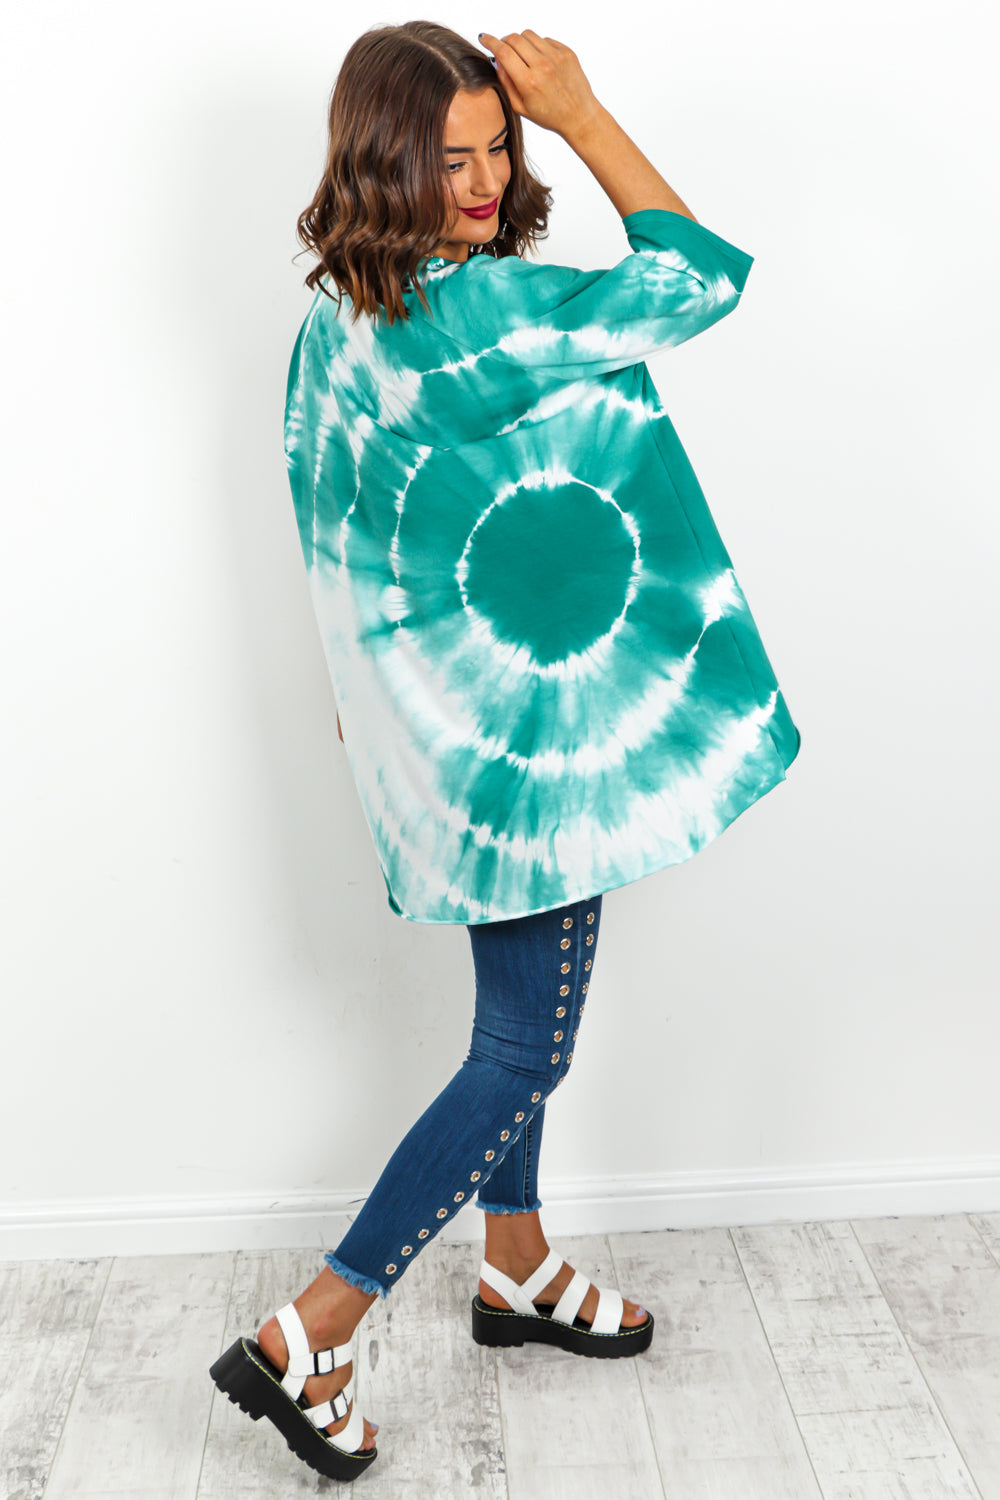 Green Tie Dye High Low Hem T-Shirt DLSB Womens Fashion